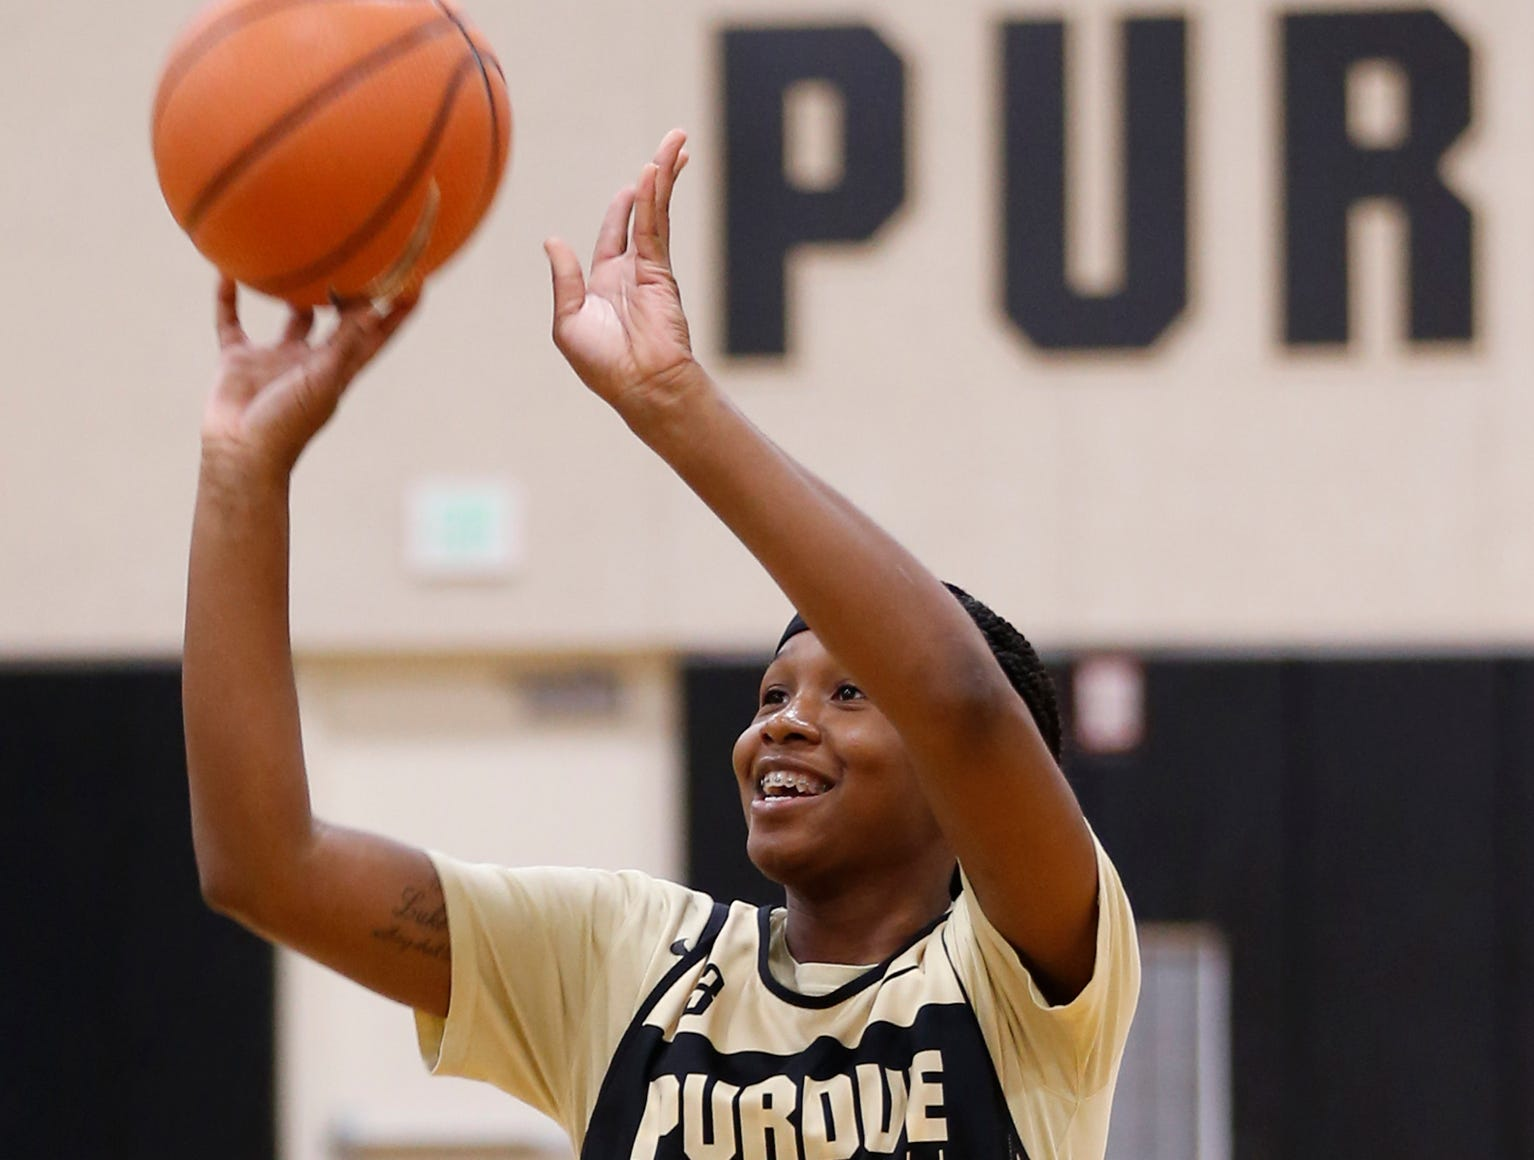 Lyndsey Whilby shoots baskets before the start of the practice for Purdue women's basketball Wednesday, September 26, 2018, at Cardinal Court in Mackey Arena.